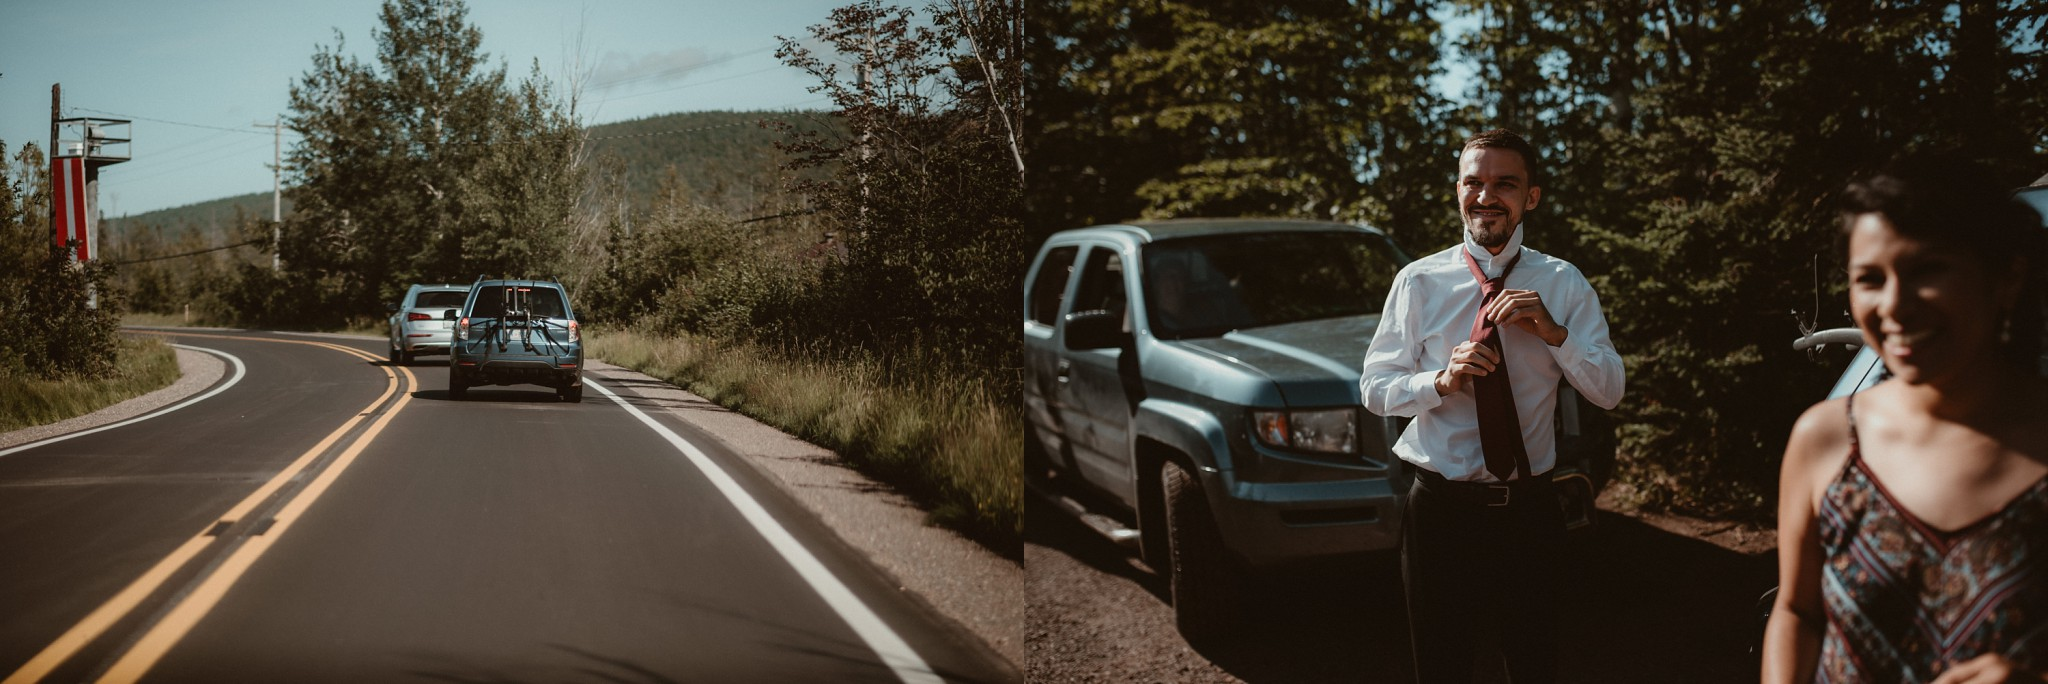 Driving to an elopement in Copper Harbor, Michigan